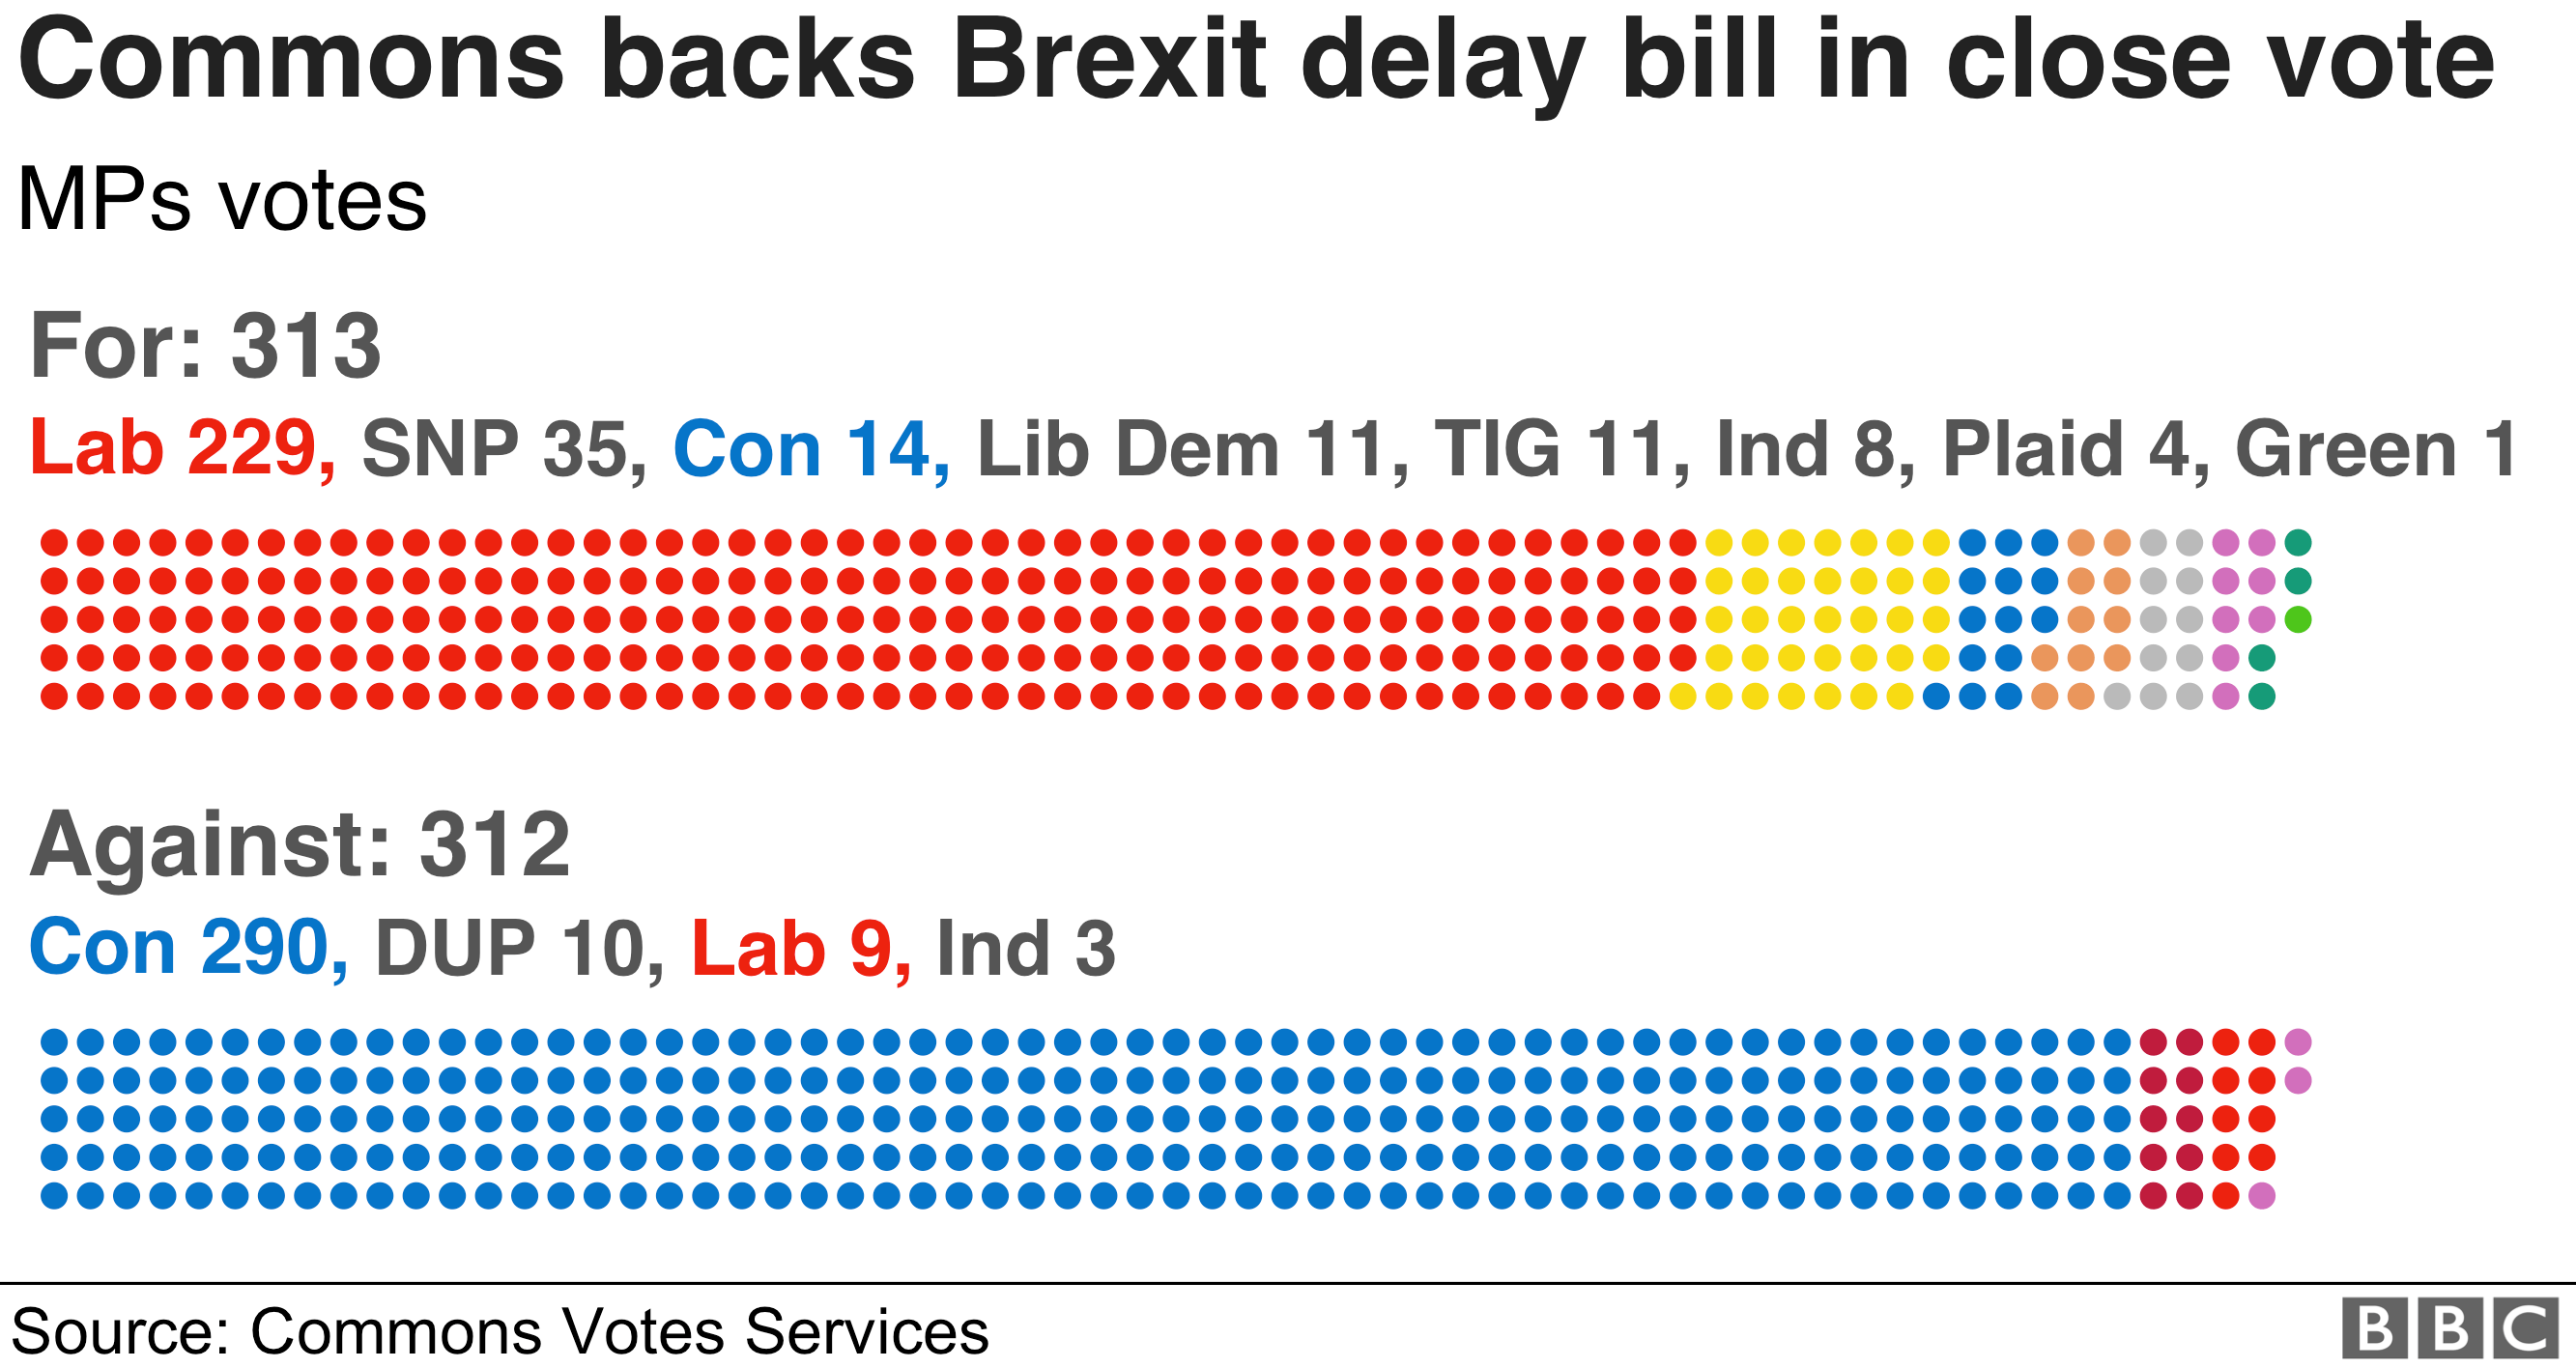 Chart showing the results of the Commons Brexit delay vote